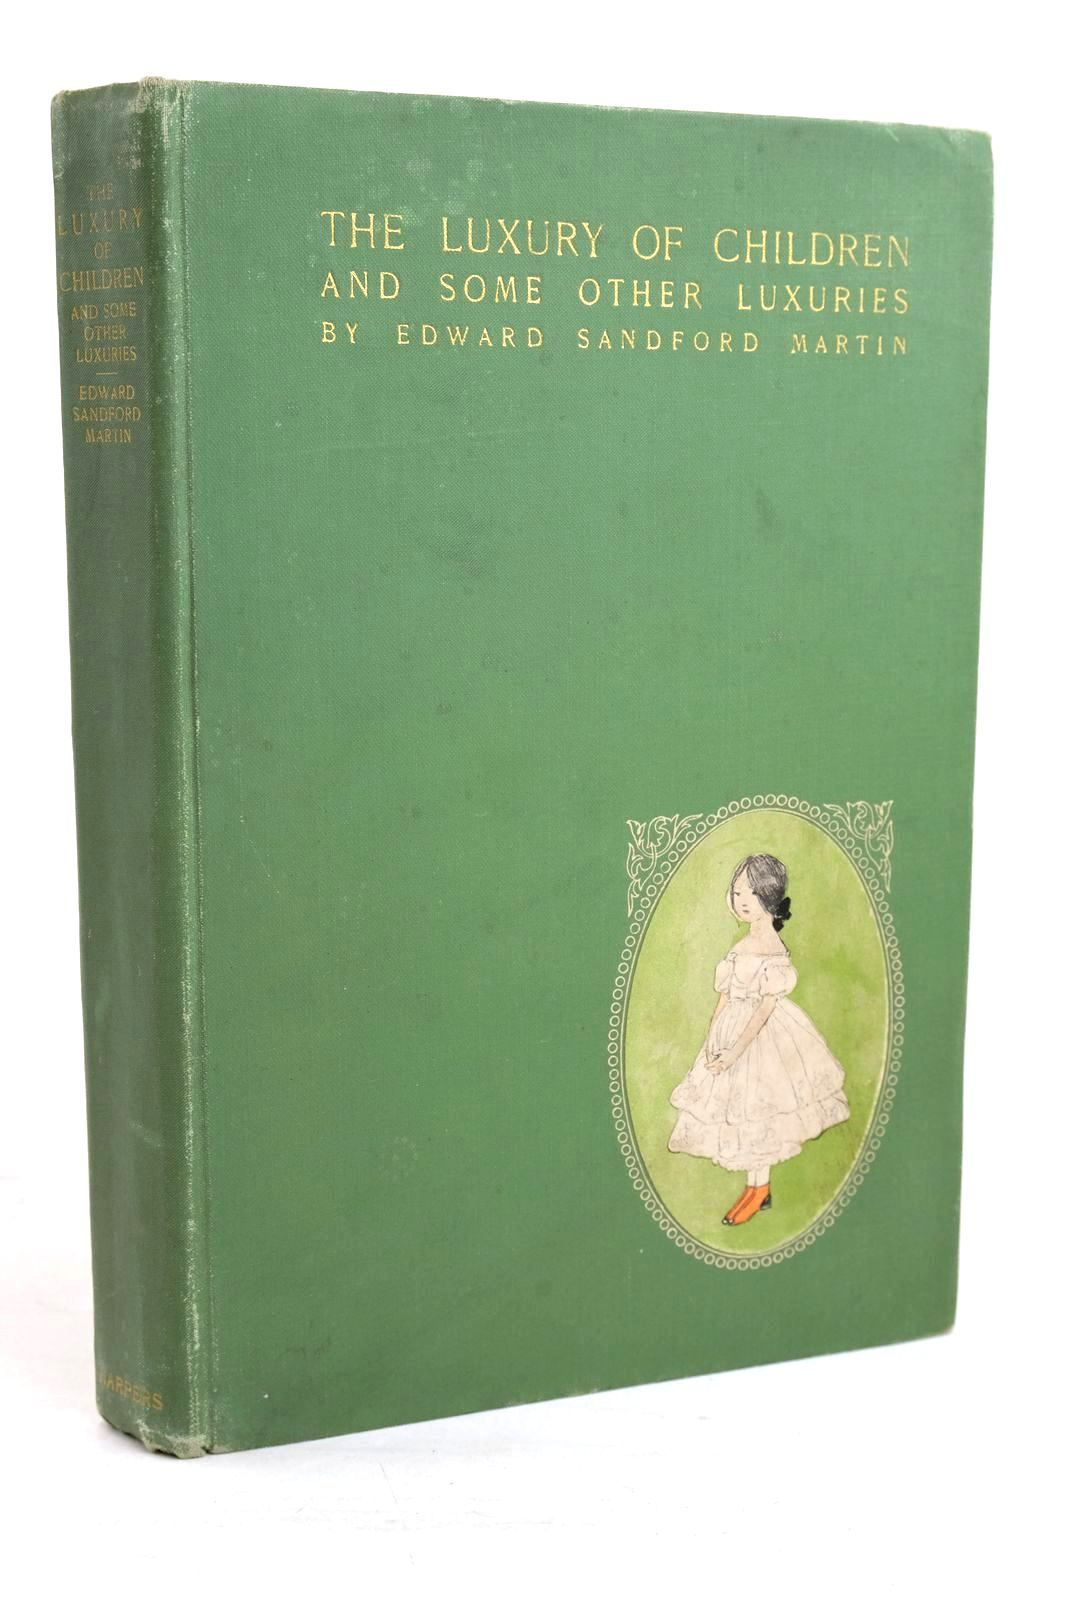 Photo of THE LUXURY OF CHILDREN & SOME OTHER LUXURIES written by Martin, Edward Sandford illustrated by Stilwell, Sarah S. published by Harper & Bros (STOCK CODE: 1320481)  for sale by Stella & Rose's Books